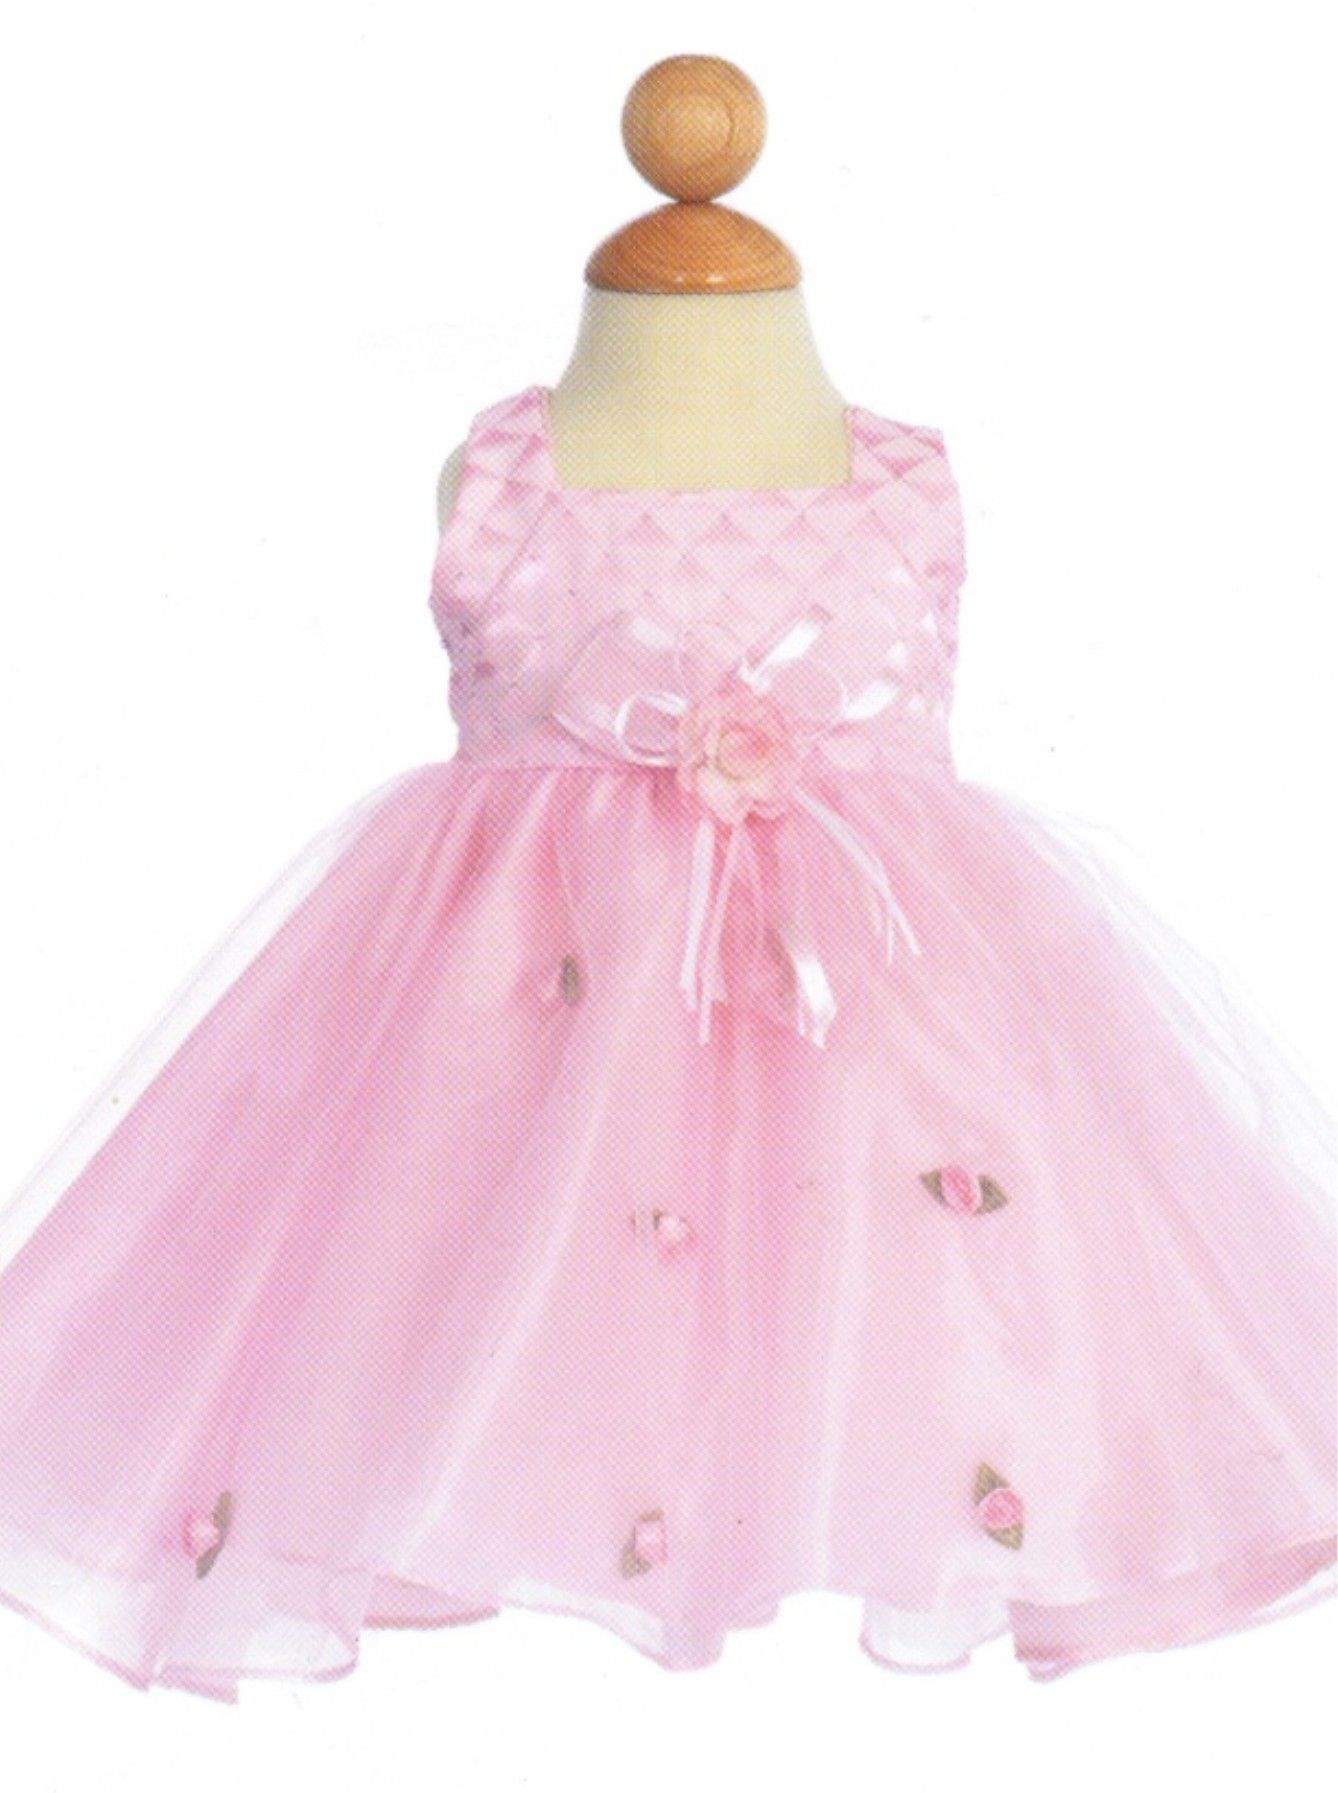 78  images about Cute as a button baby clothes on Pinterest  Baby ...